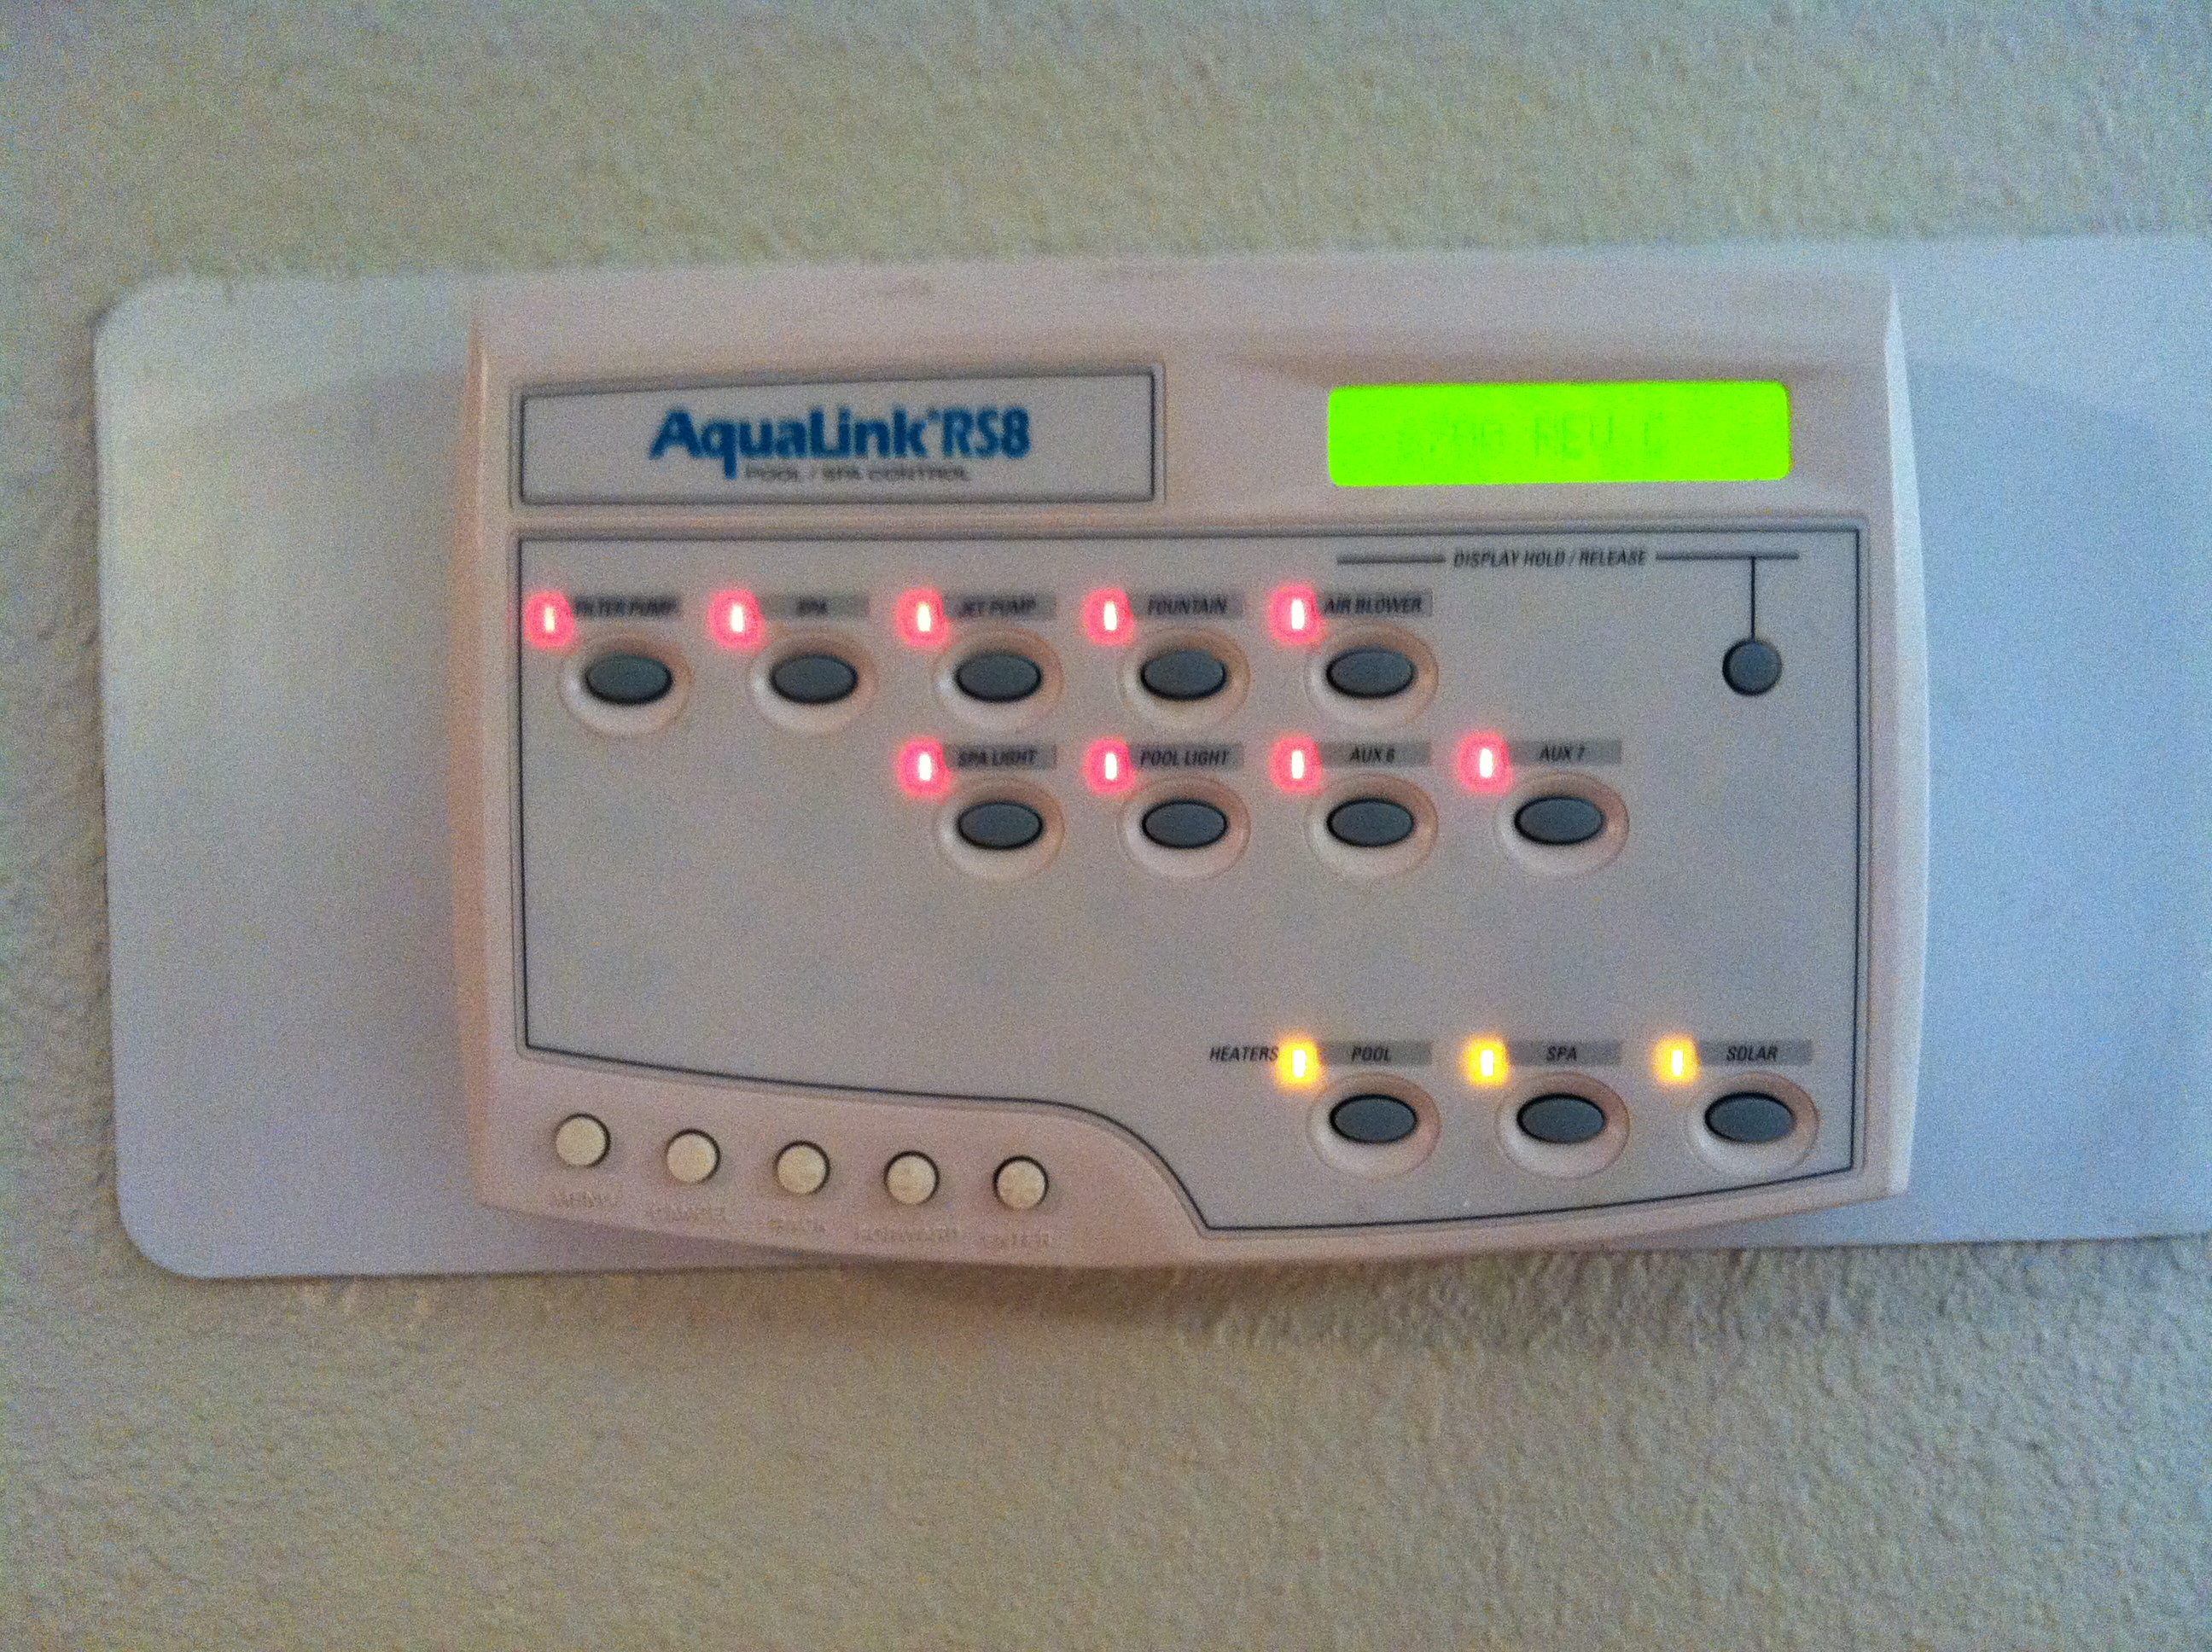 aqualink rs pool control center not communicating with main. Black Bedroom Furniture Sets. Home Design Ideas